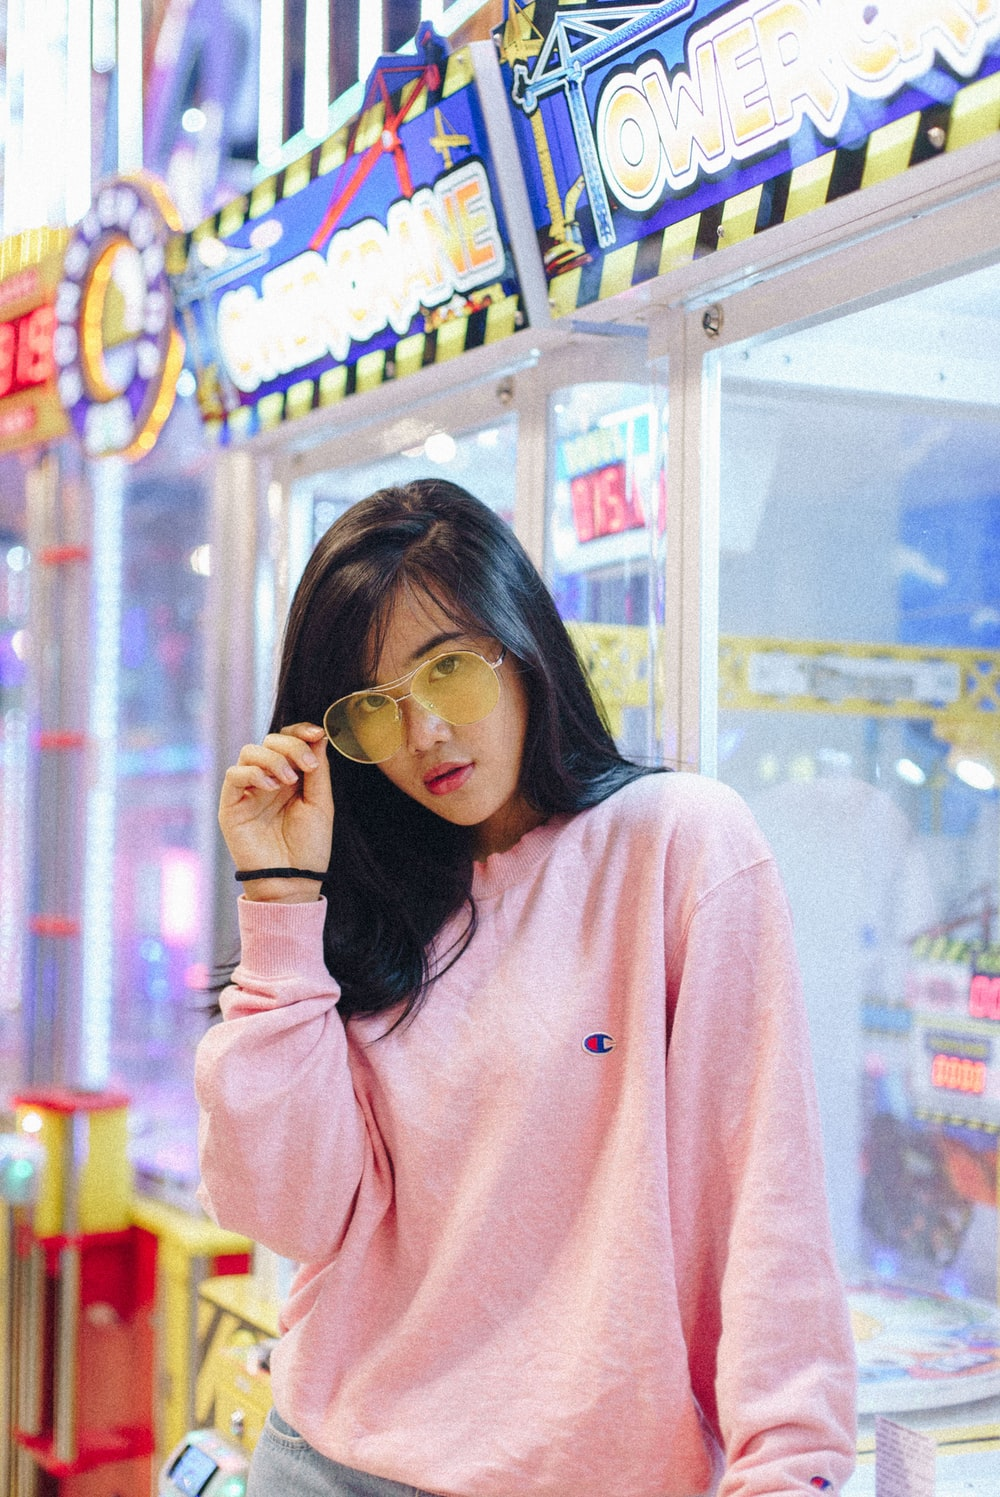 woman in pink Champion sweatshirt holding her sunglasses leaning on game machine